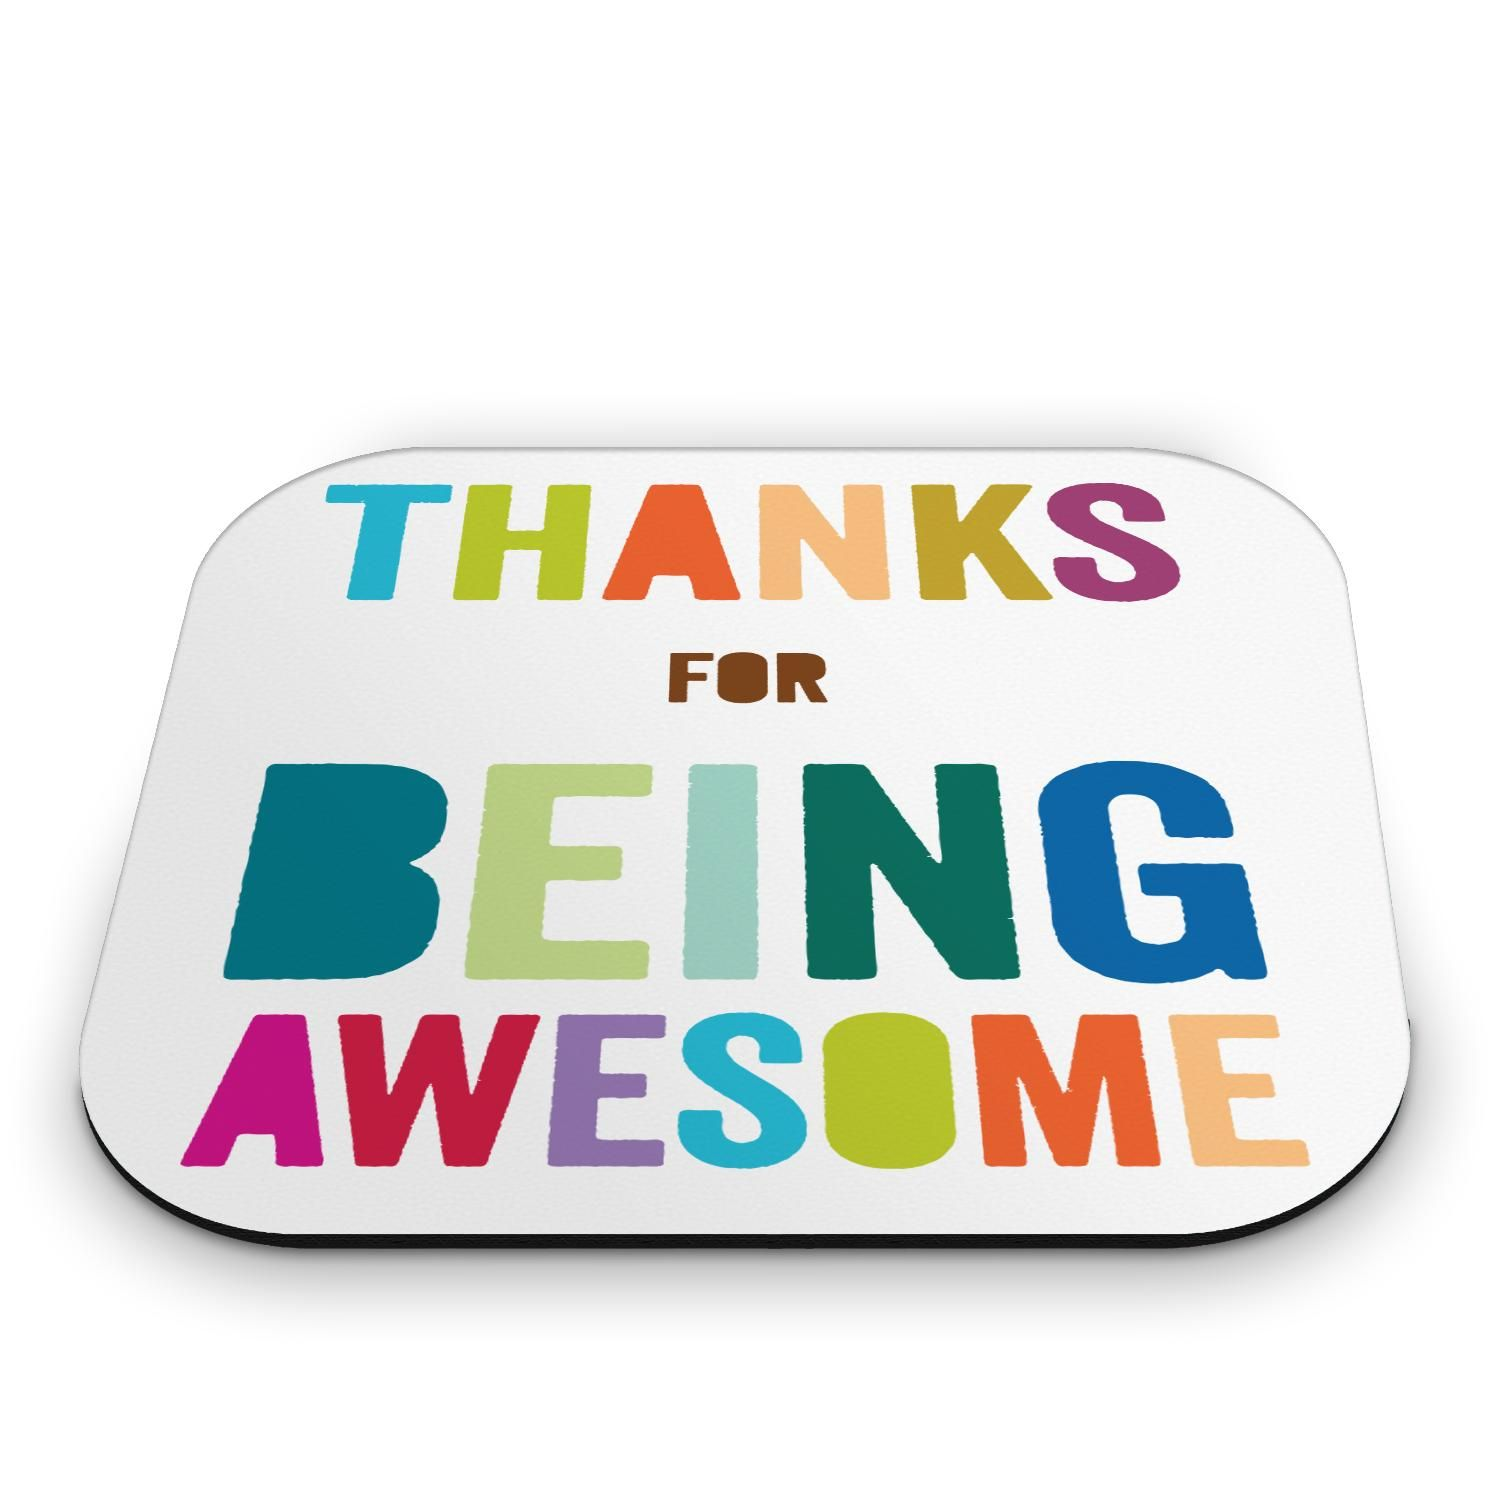 Employee Appreciation Quotes Thanks For Being Awesome Mouse Pad  A Great Desk Accessories And